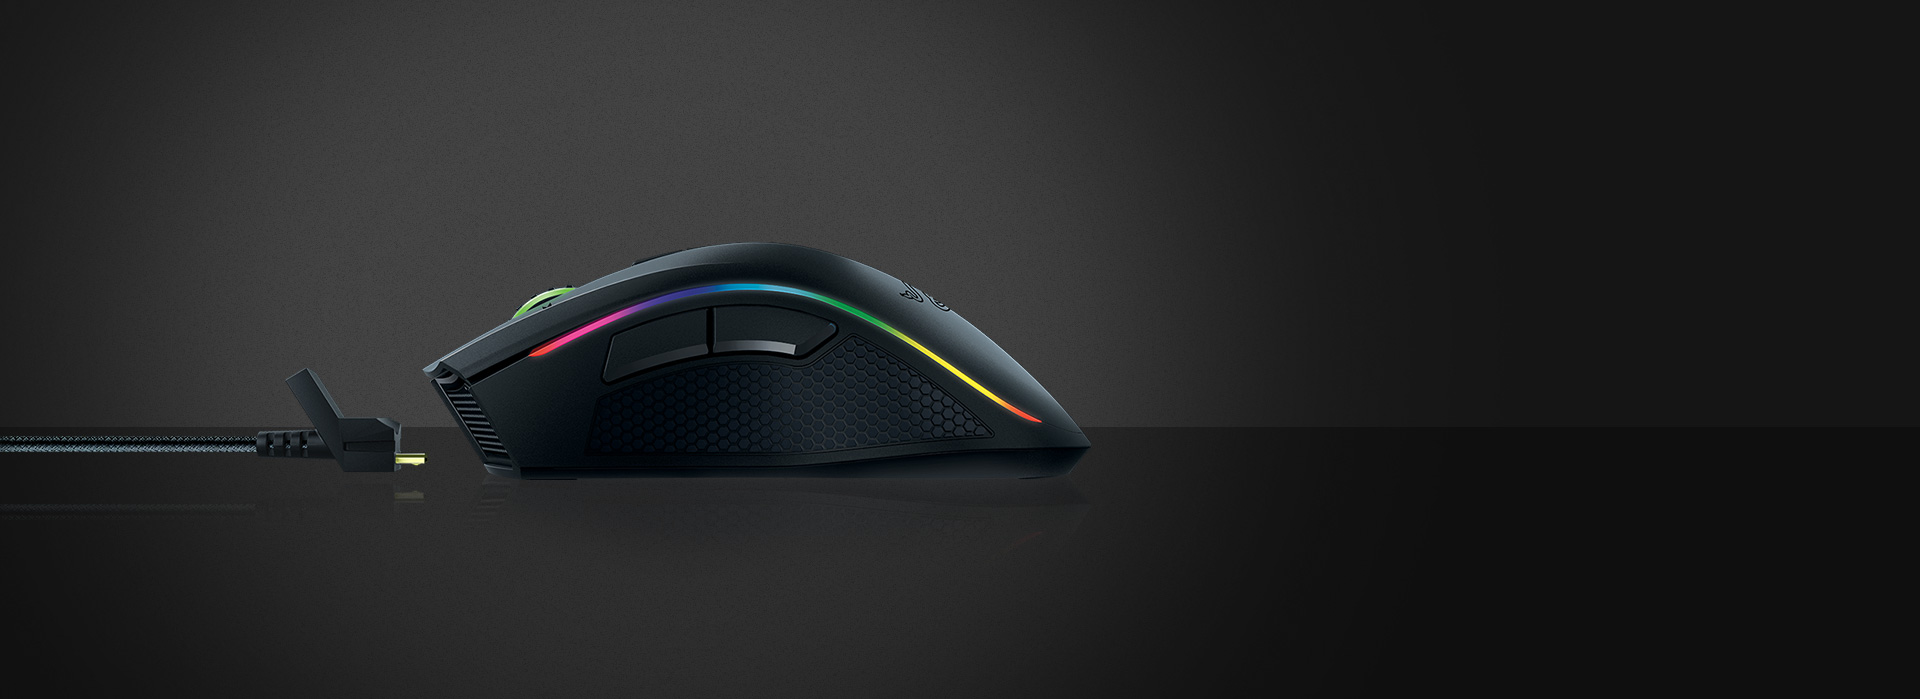 Razer Mamba Best Wireless Mouse For Gaming